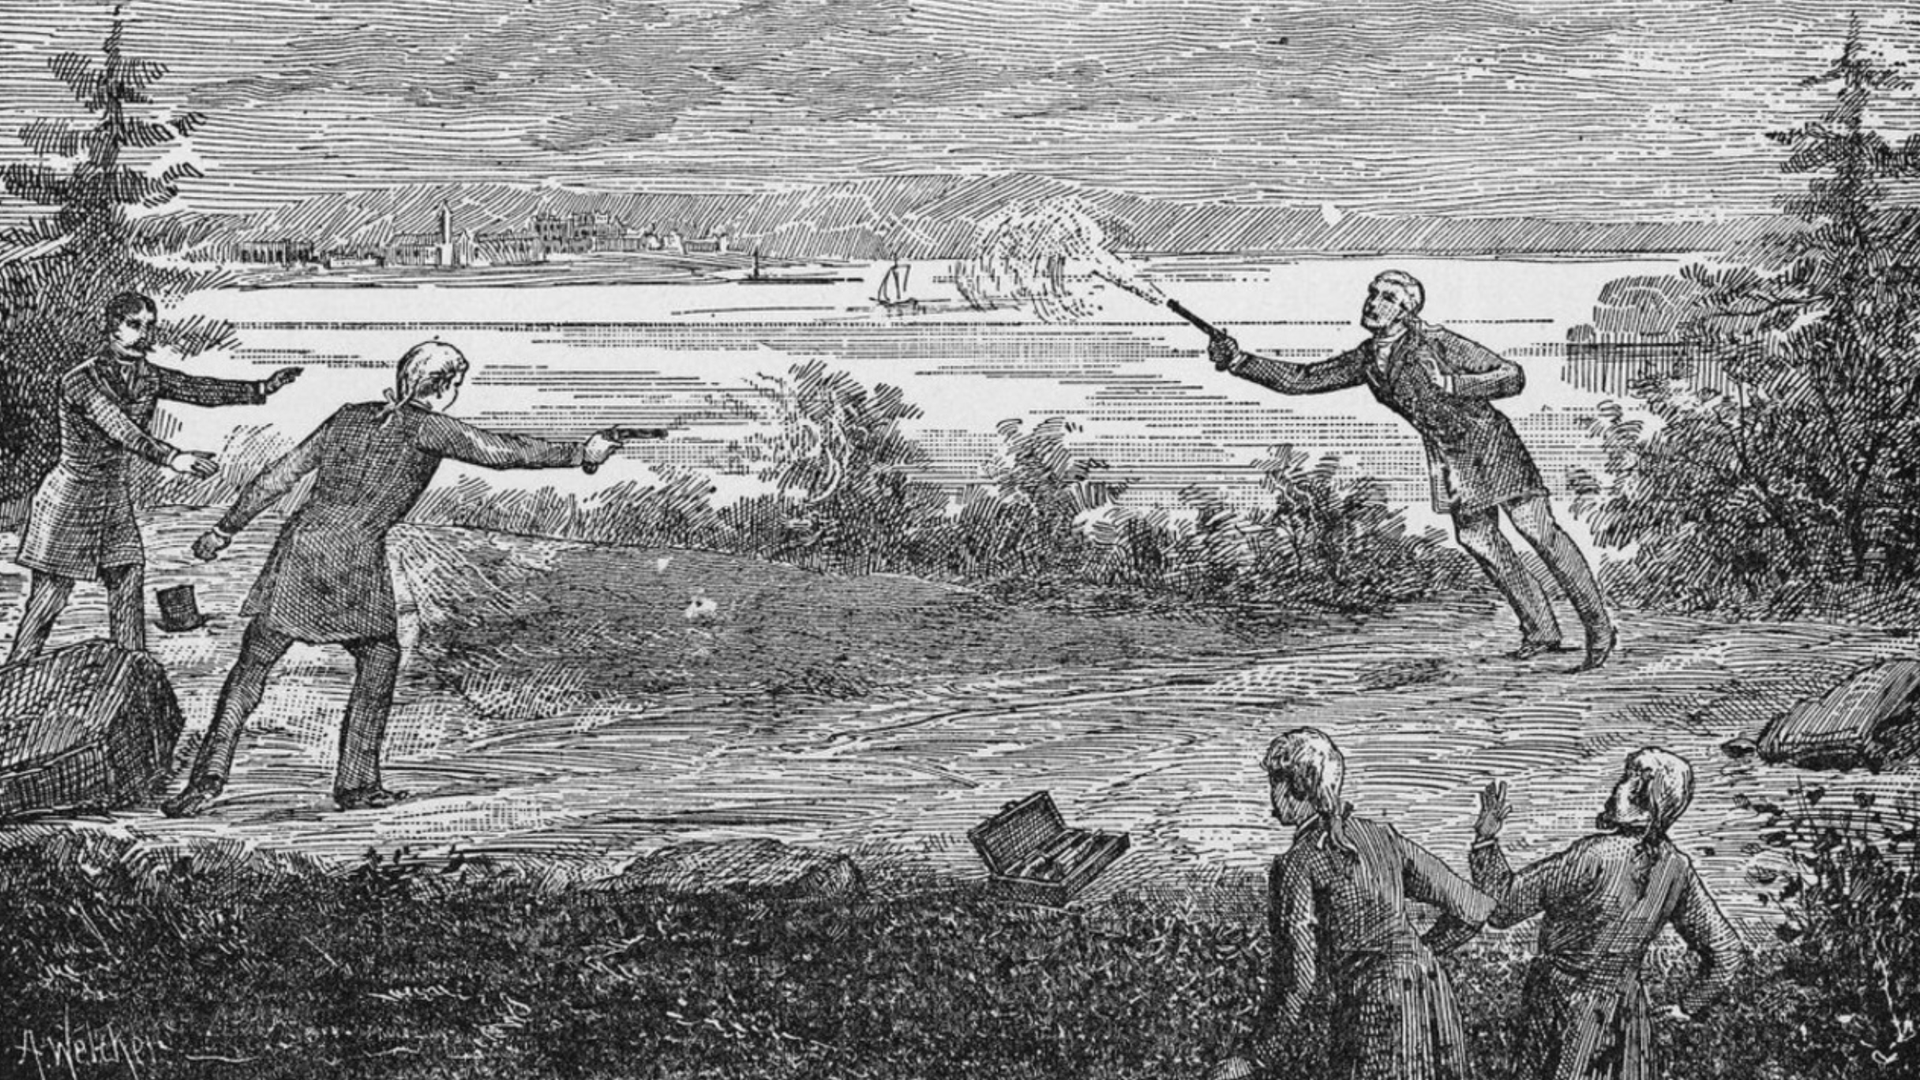 Vice President Aaron Burr fatally wounds Alexander Hamilton during a pistol duel in Weehawken, N.J., on July 11, 1804.